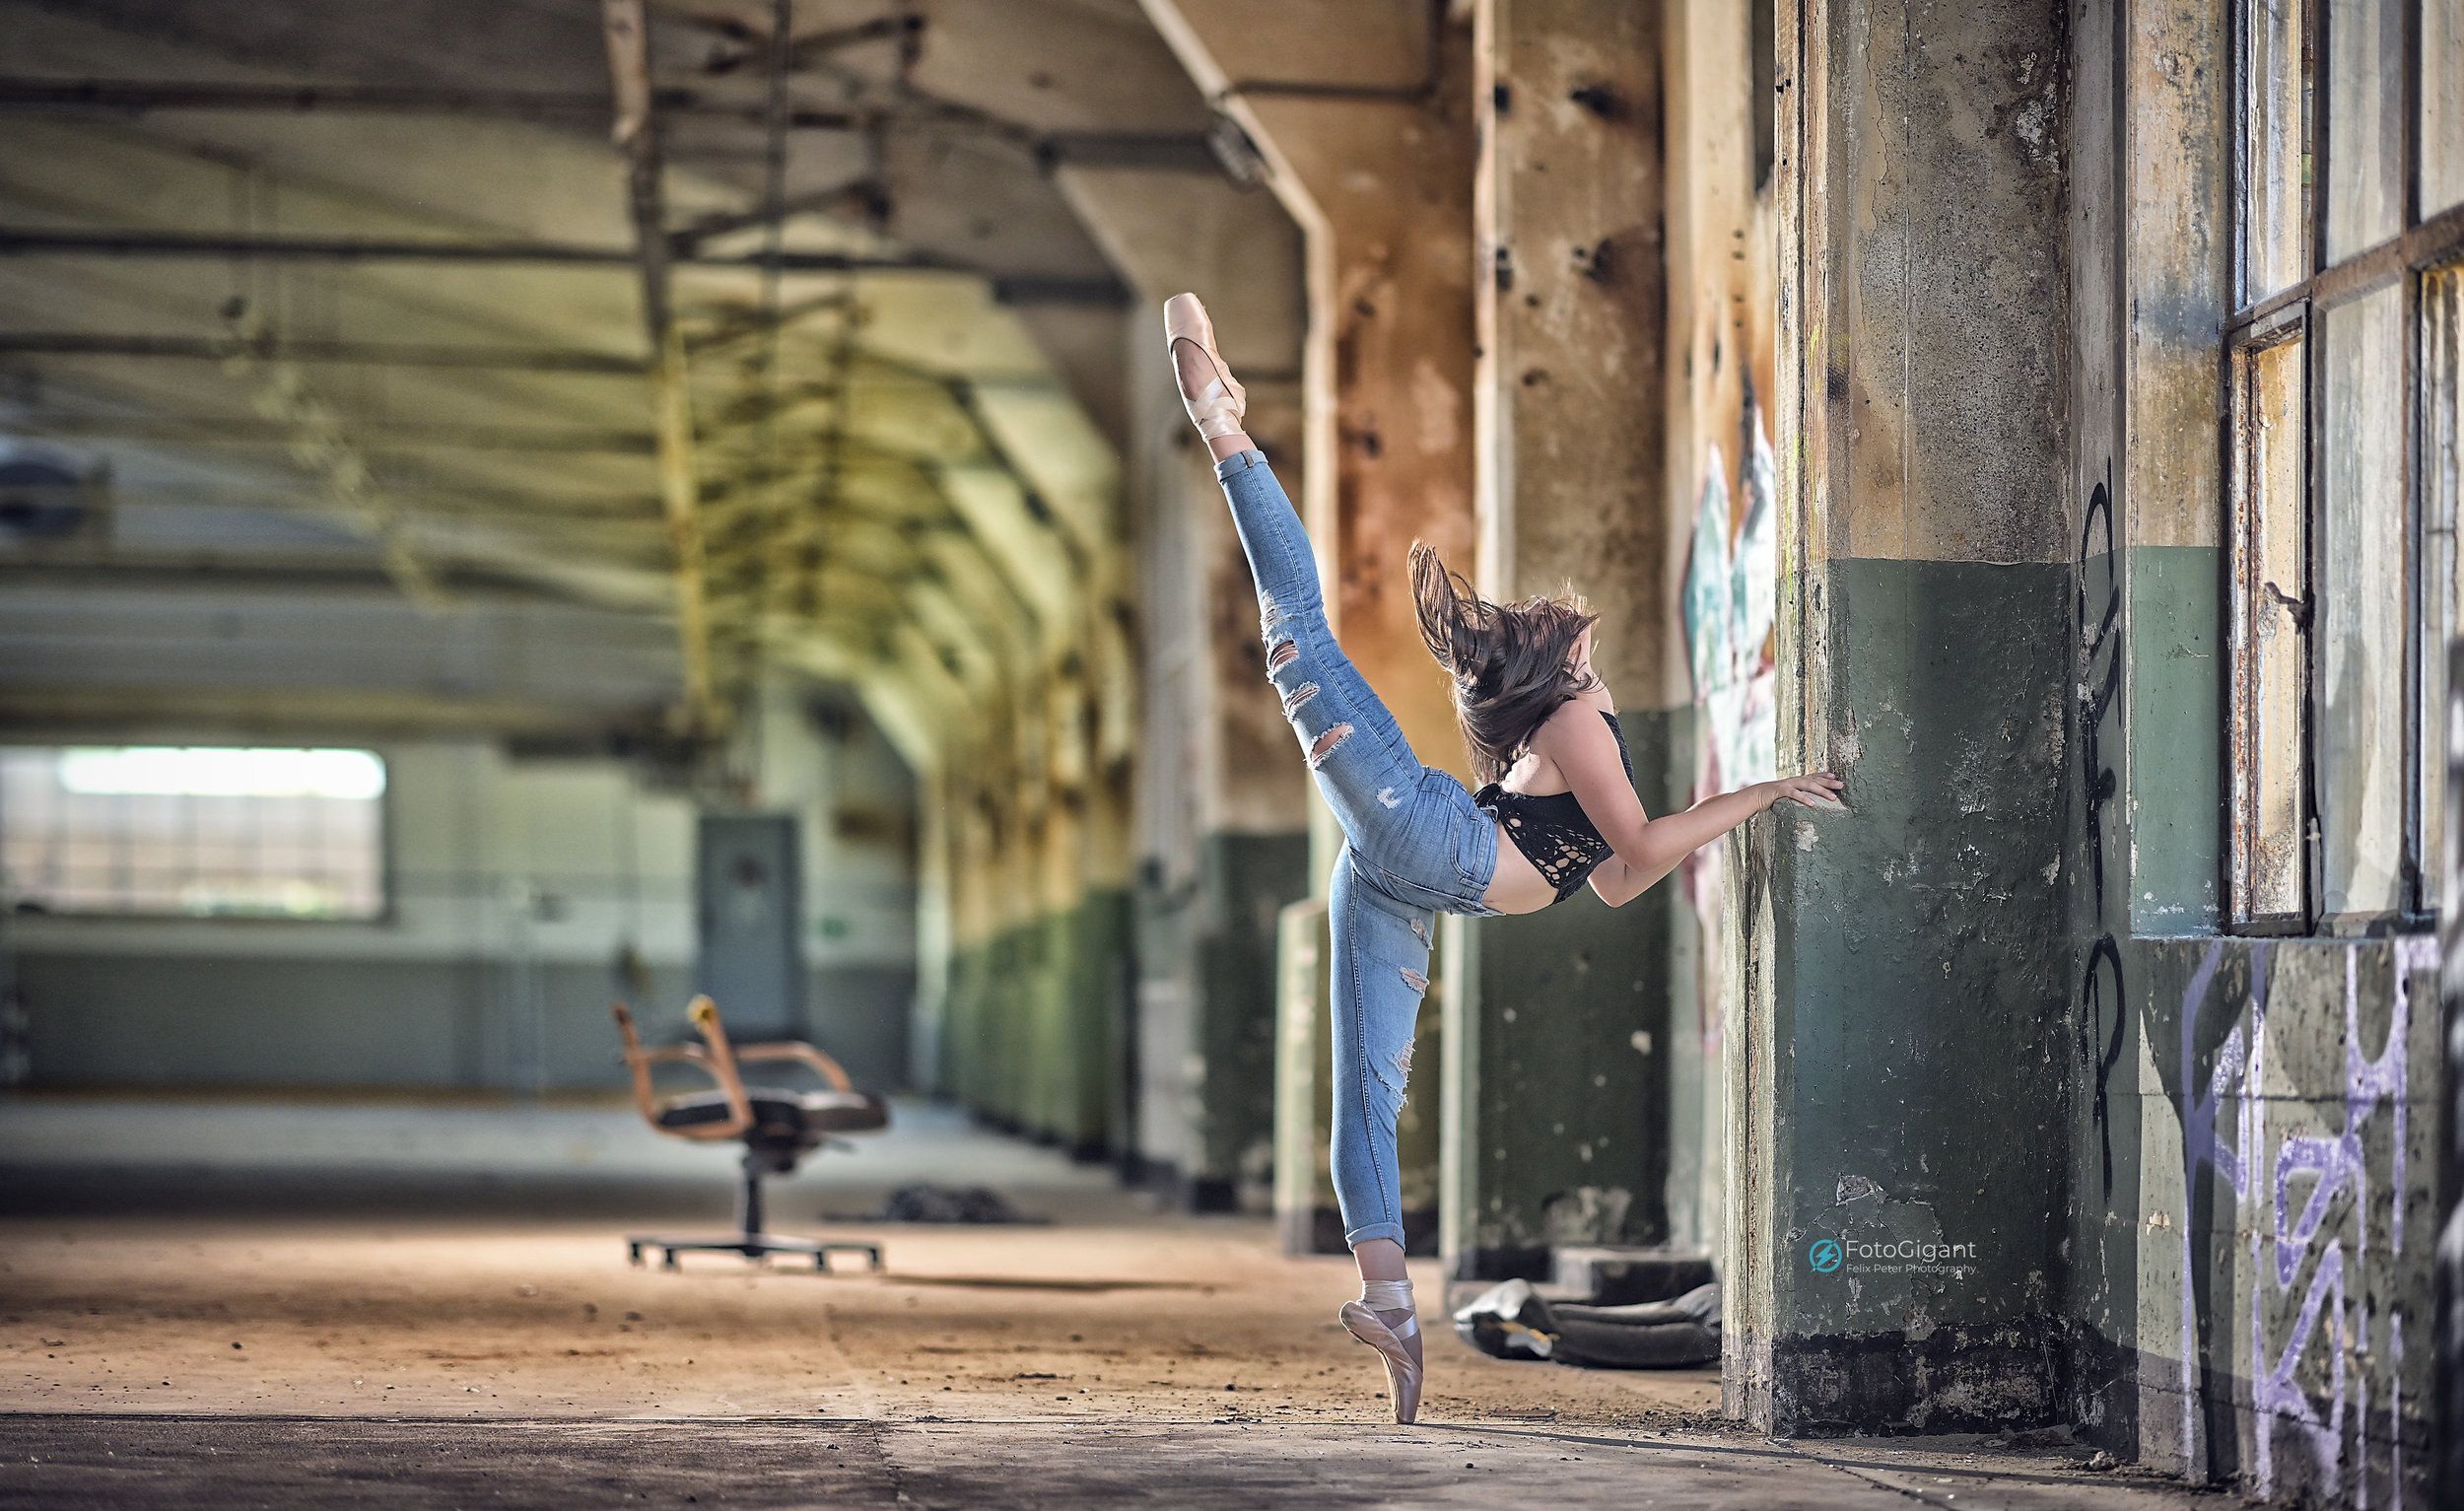 Balletdancer_in_Lostplace_04.jpg